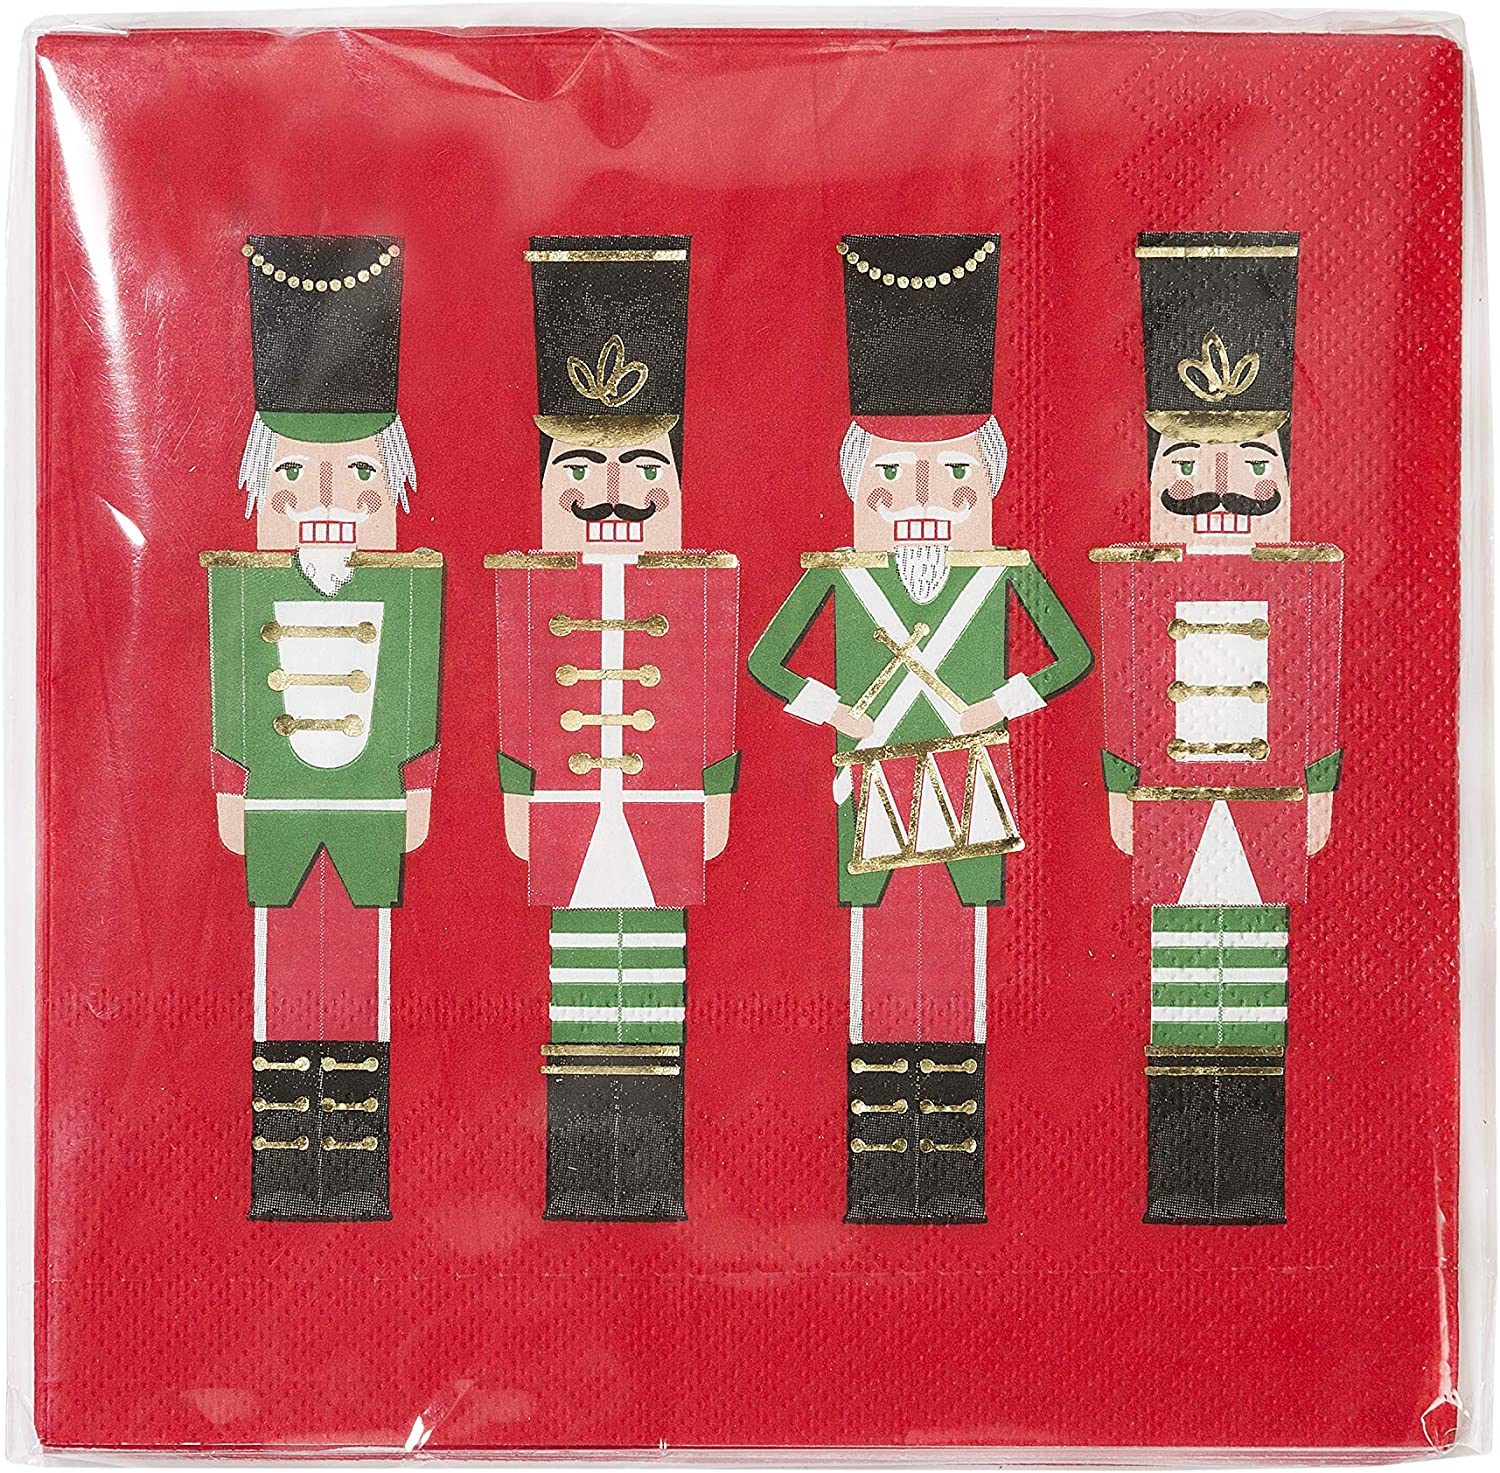 Ambiente Christmas Napkin 33 Centimeter Poinsettia all Over Pack of 20